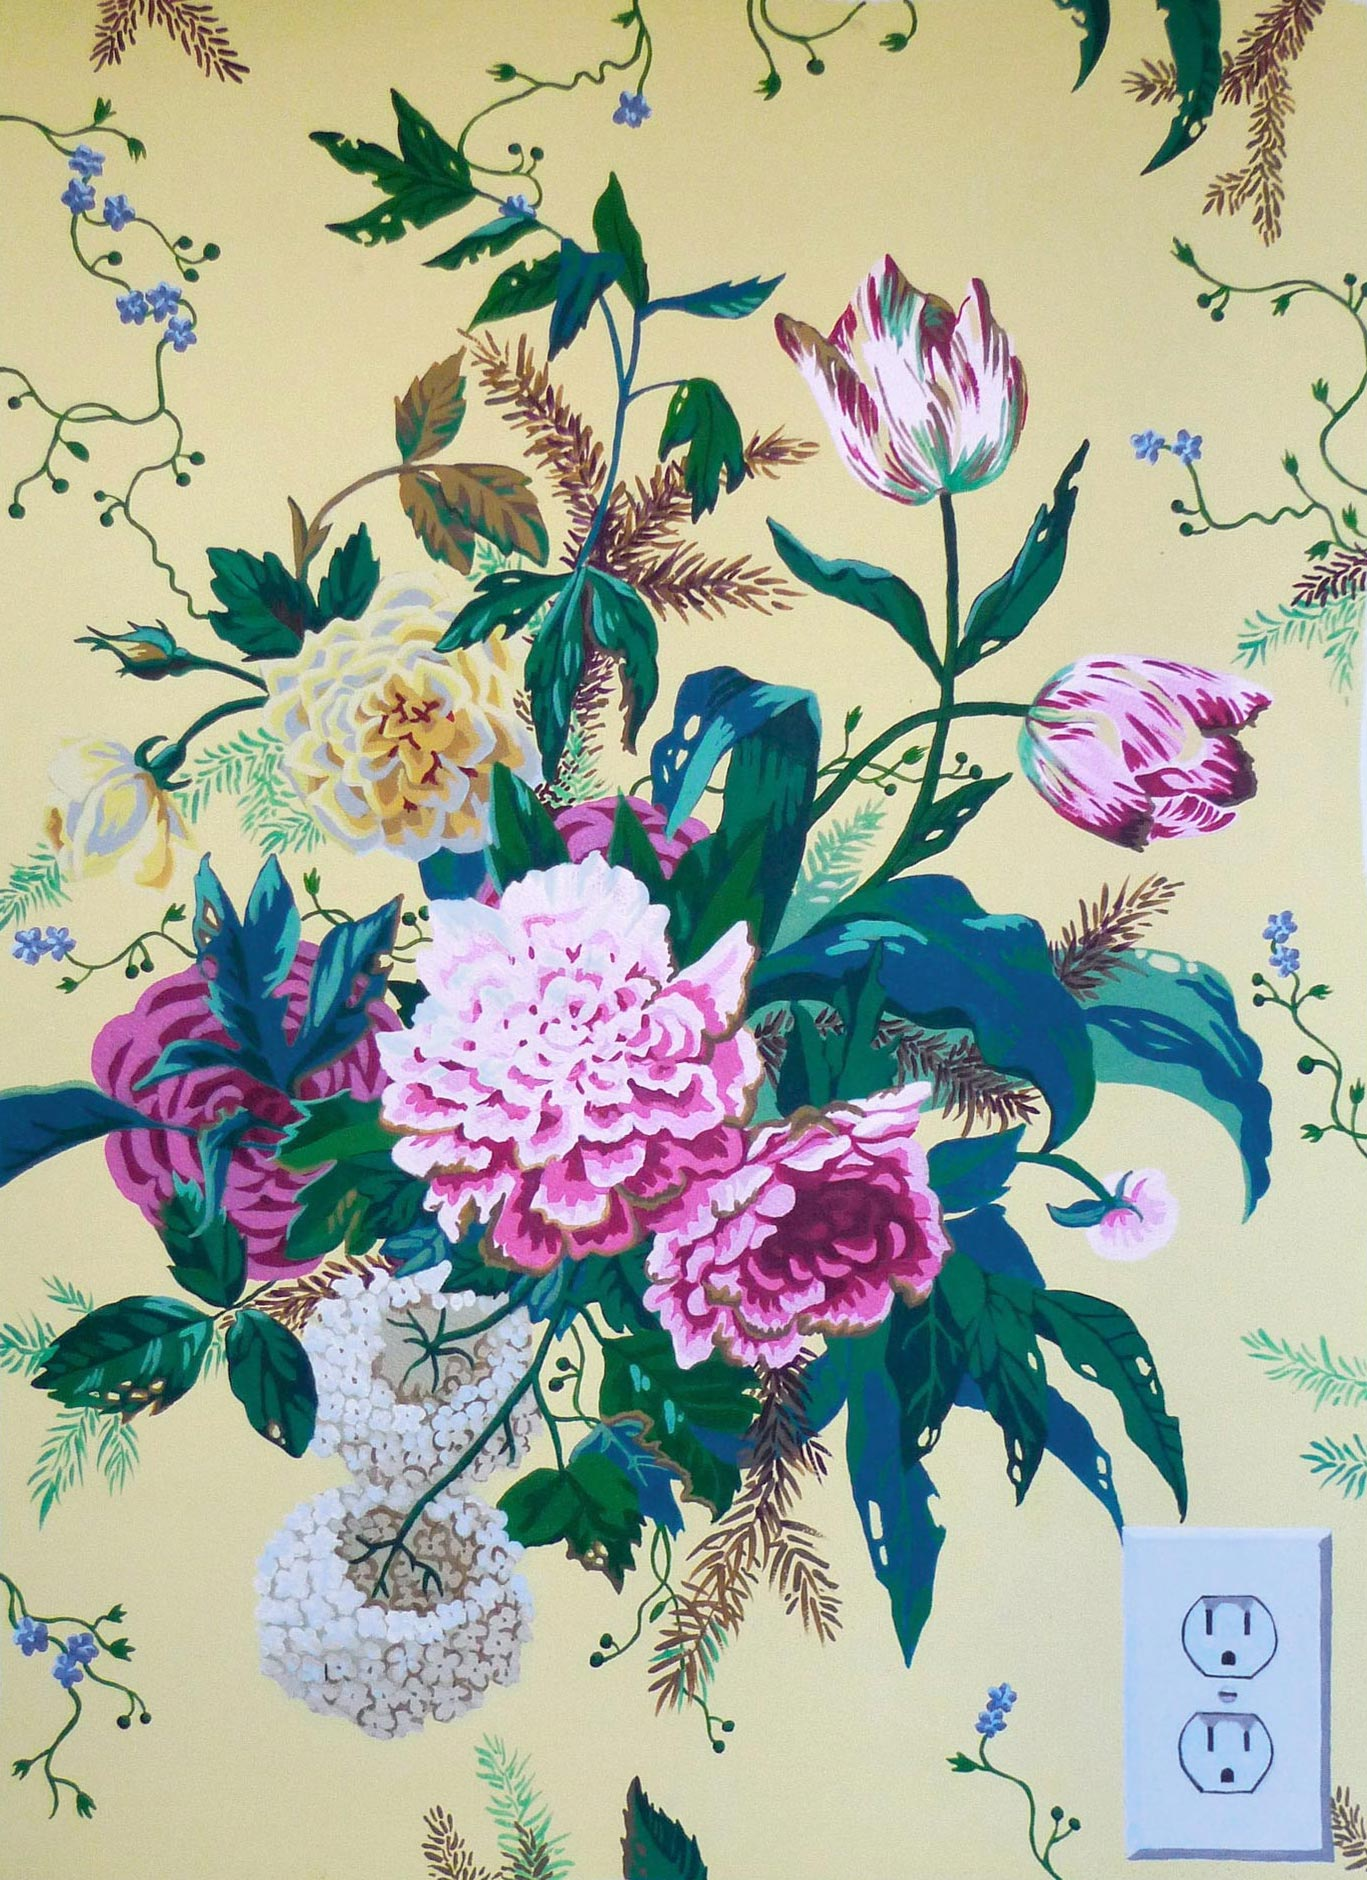 Flower-Painting-2-Web.jpg